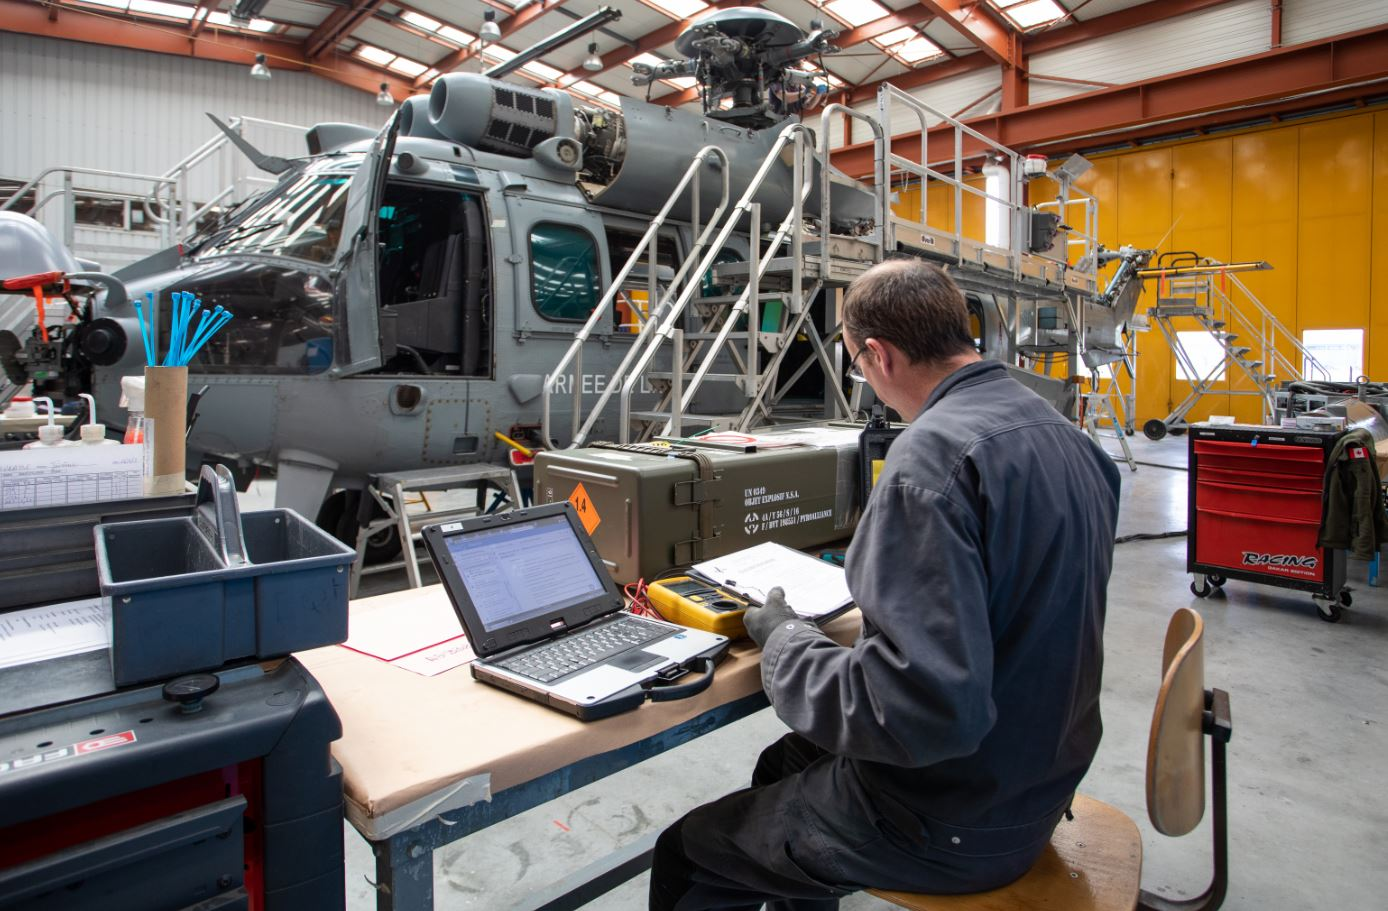 HELI-UNION PERFORMS THE FIRST EVER H725 CARACAL (H225M) MAJOR OVERHAUL